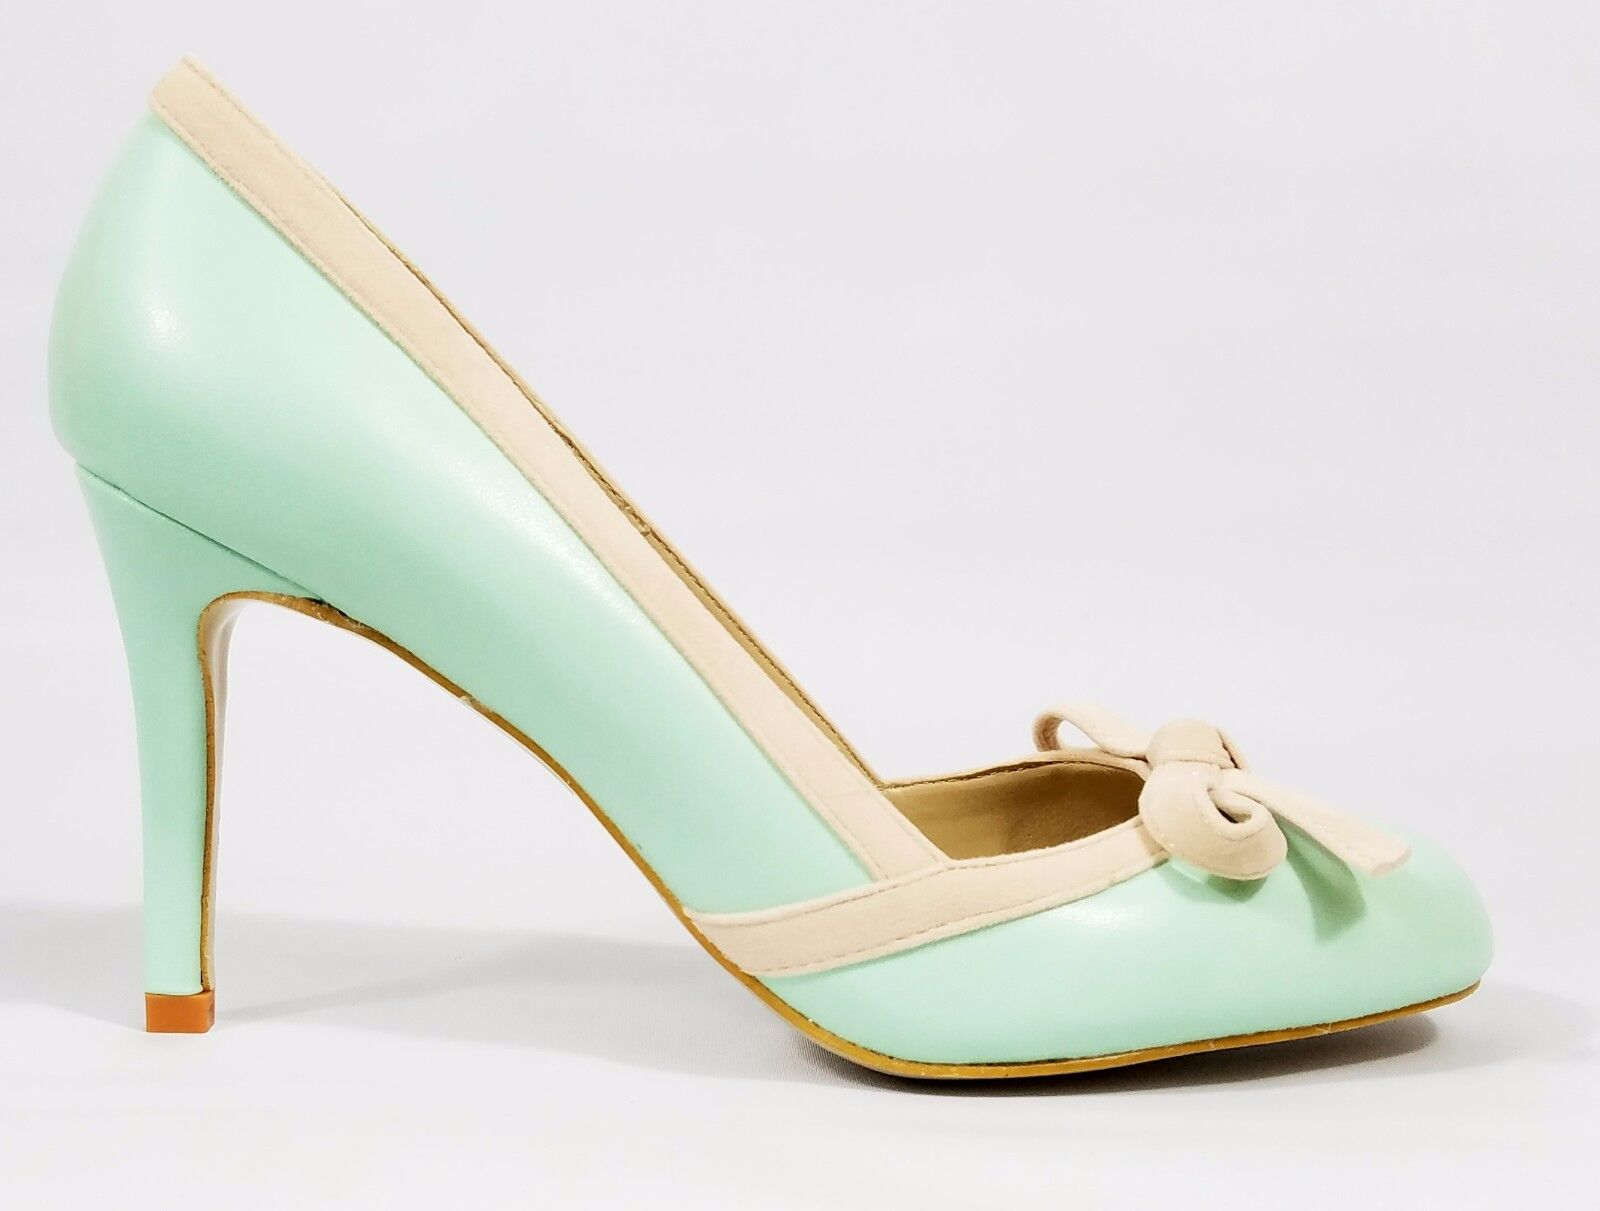 So Me MC Sole Mint Round Toe Single Sole MC Pump High Heel Shoe 6-11 9ed85f